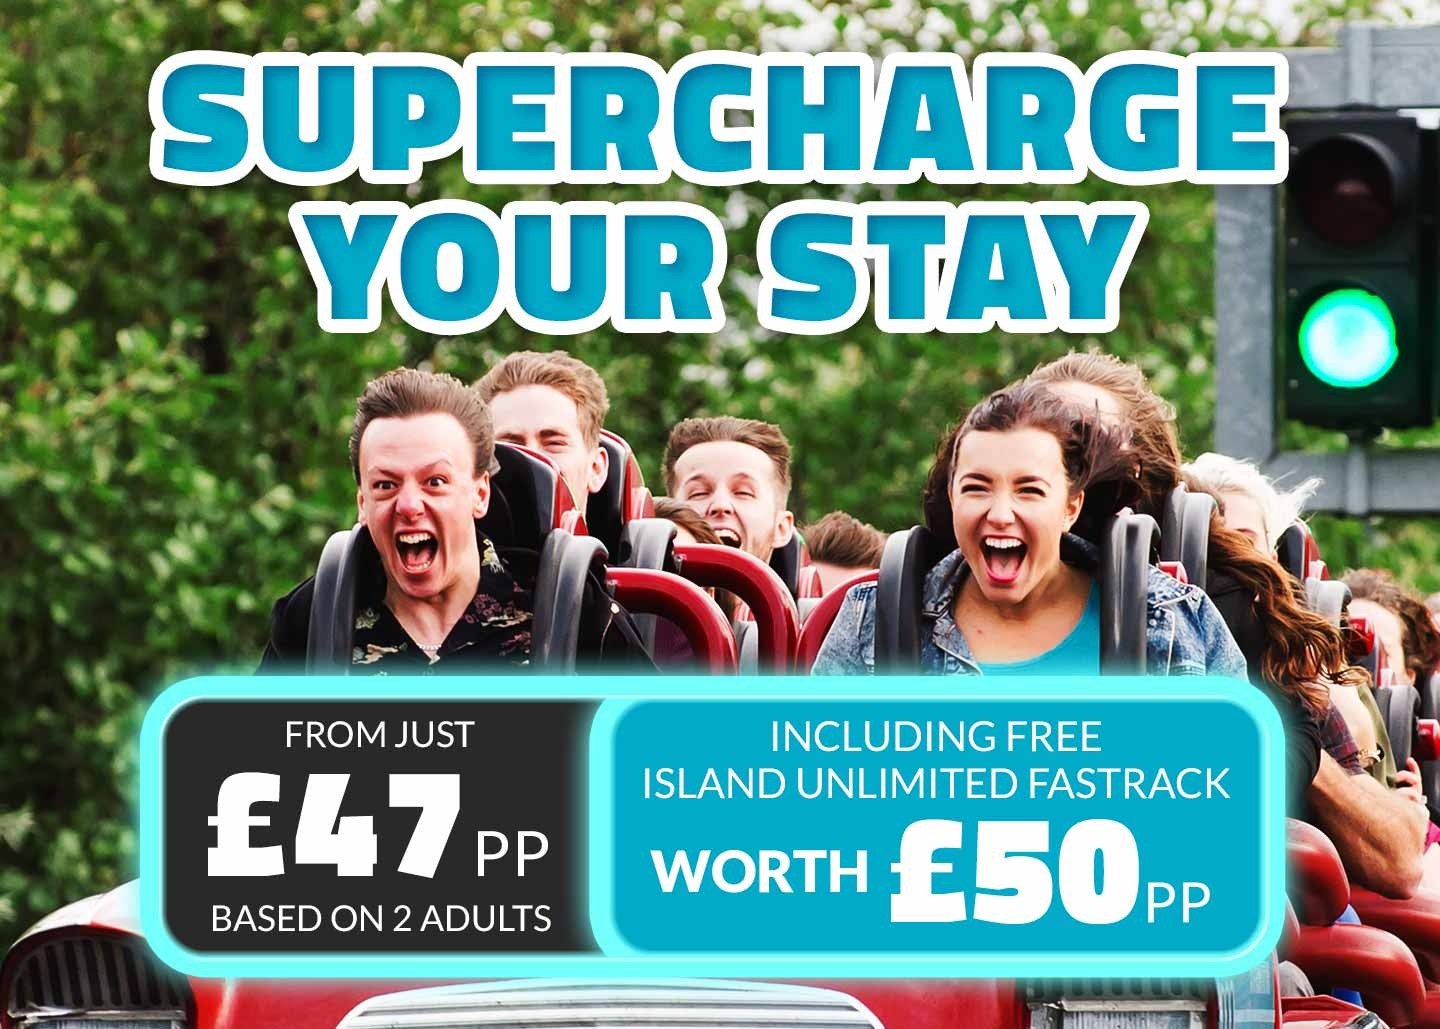 Supercharge one day ticket offer at Thorpe Park Resort